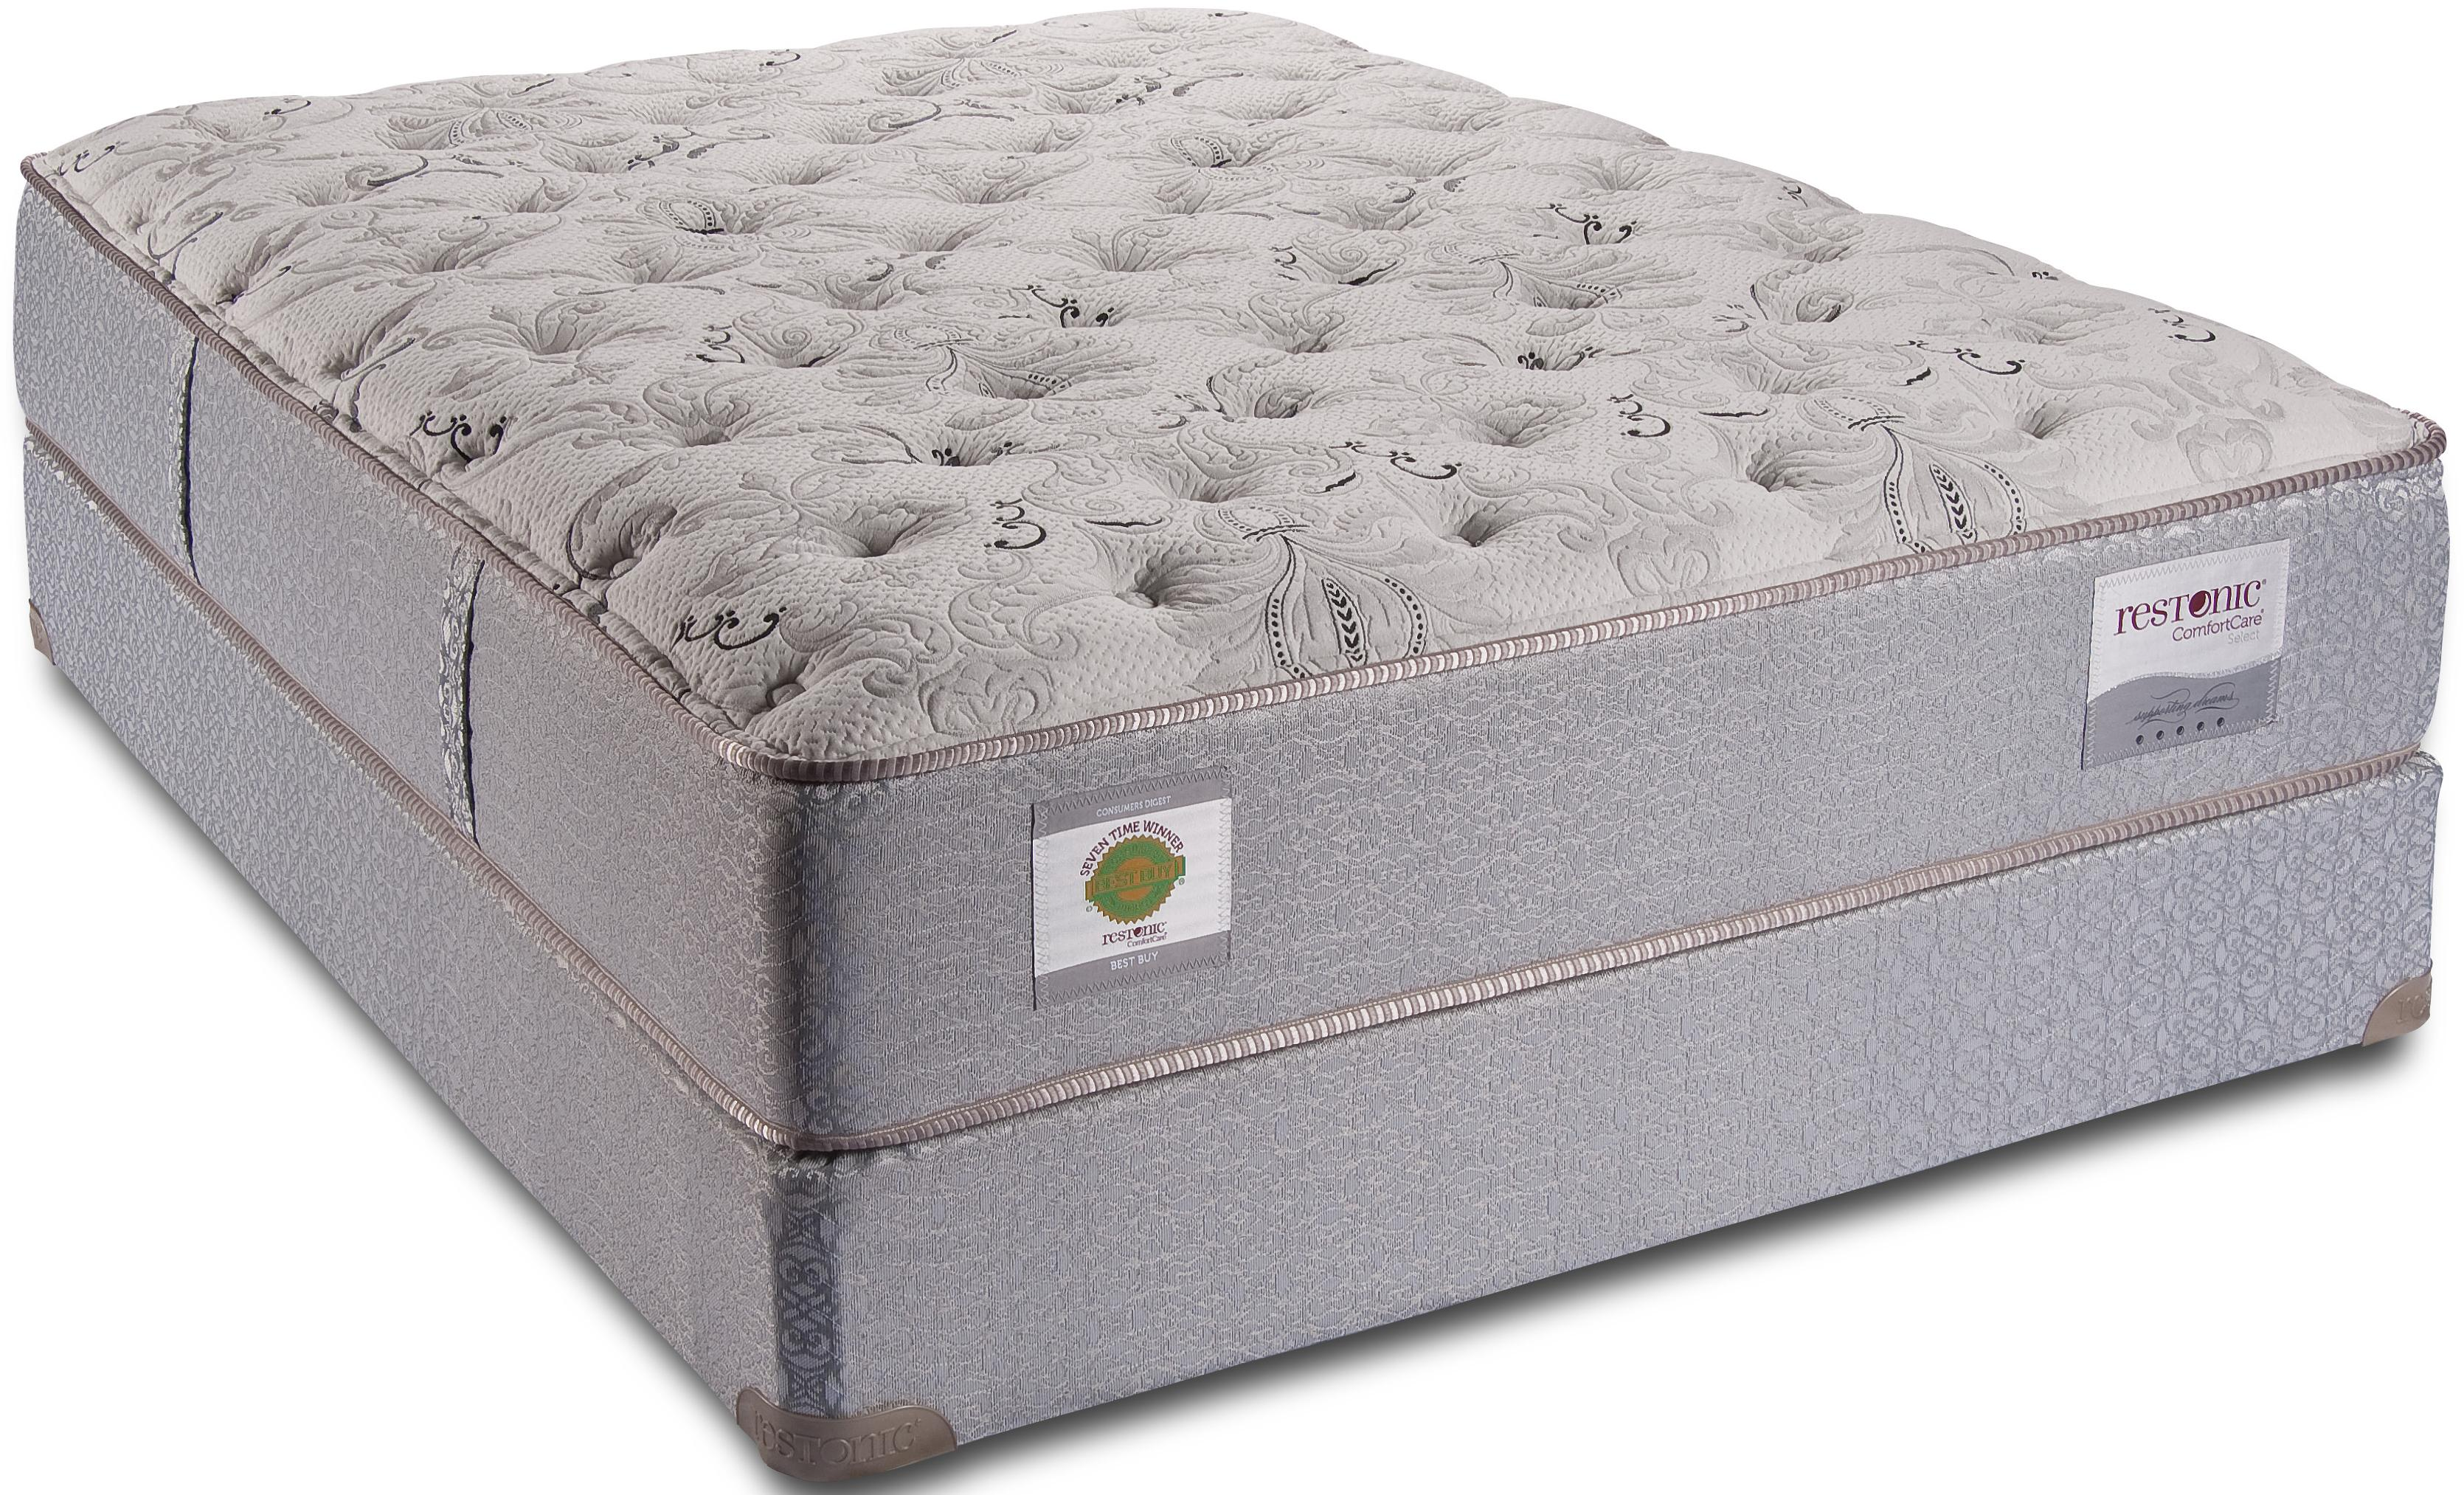 King Cushion Firm Mattress By Restonic Wolf And Gardiner